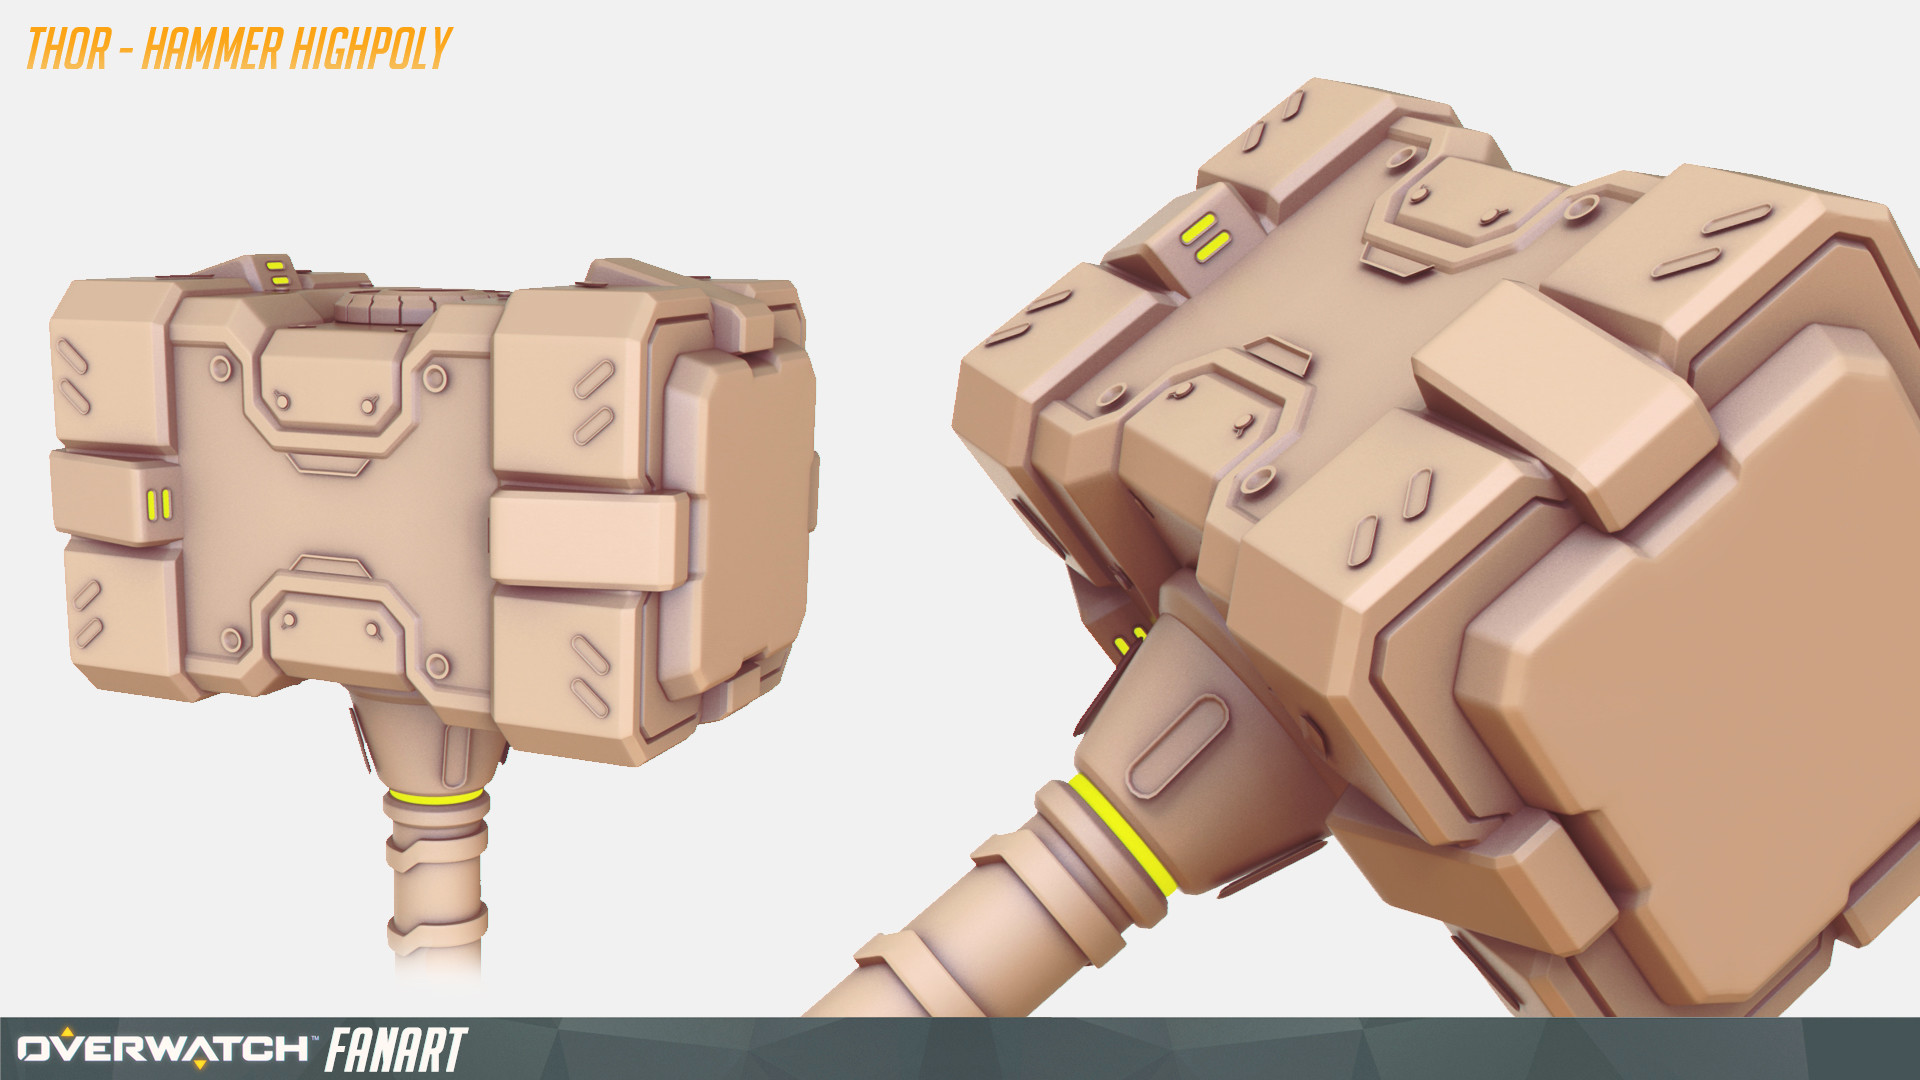 Thor - HighPoly Weapon 02